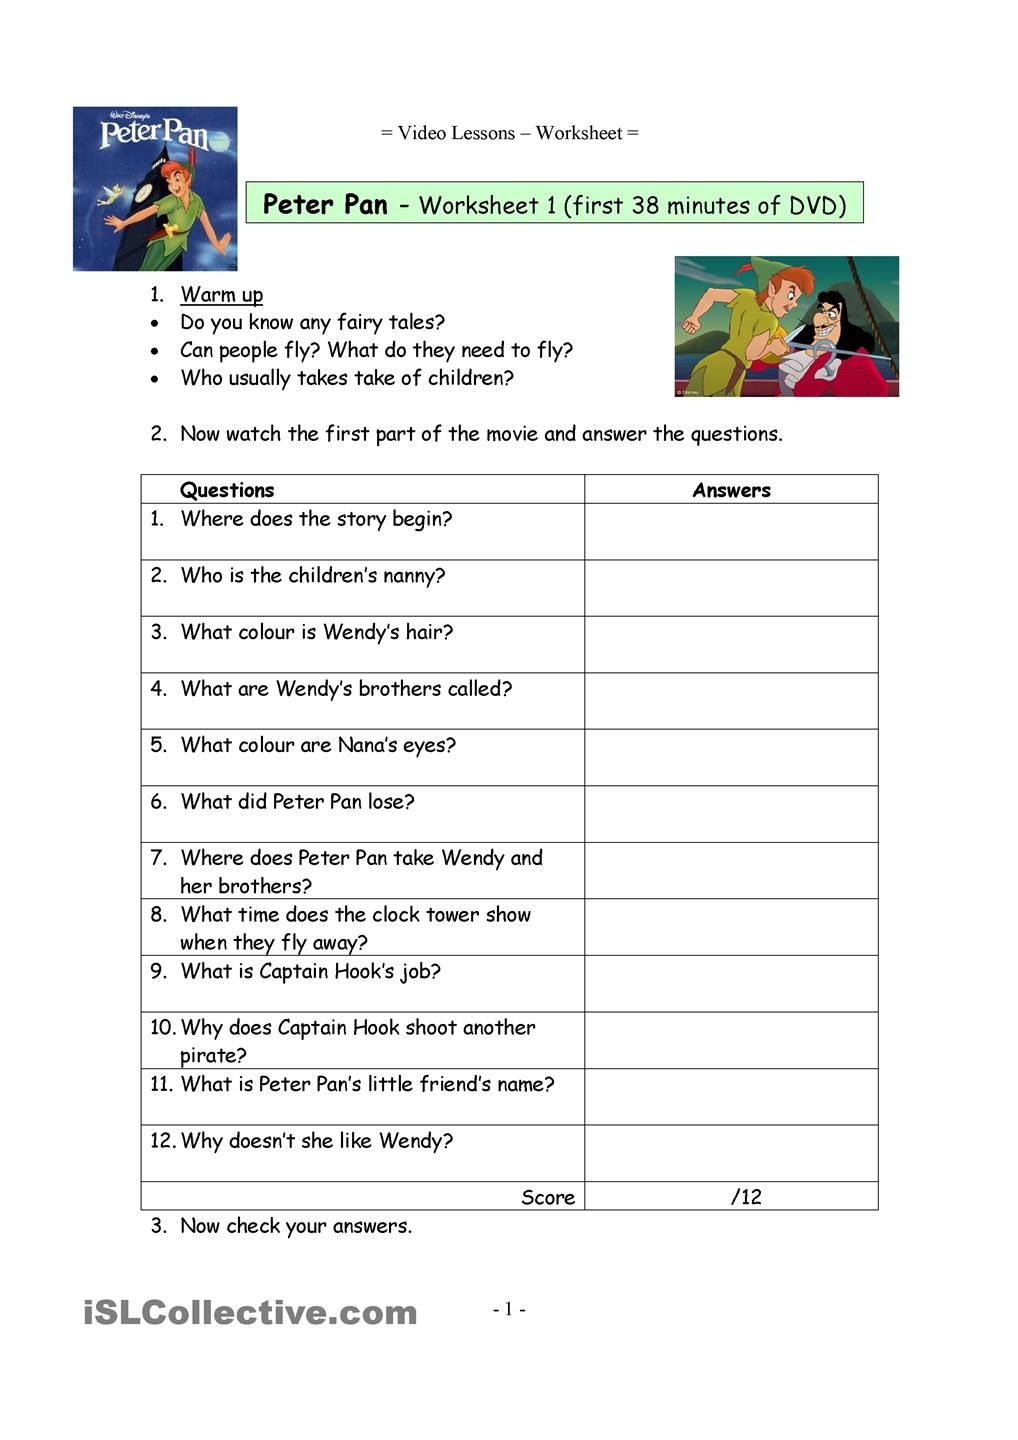 Video worksheets for the classic Disney movie Peter Pan ...